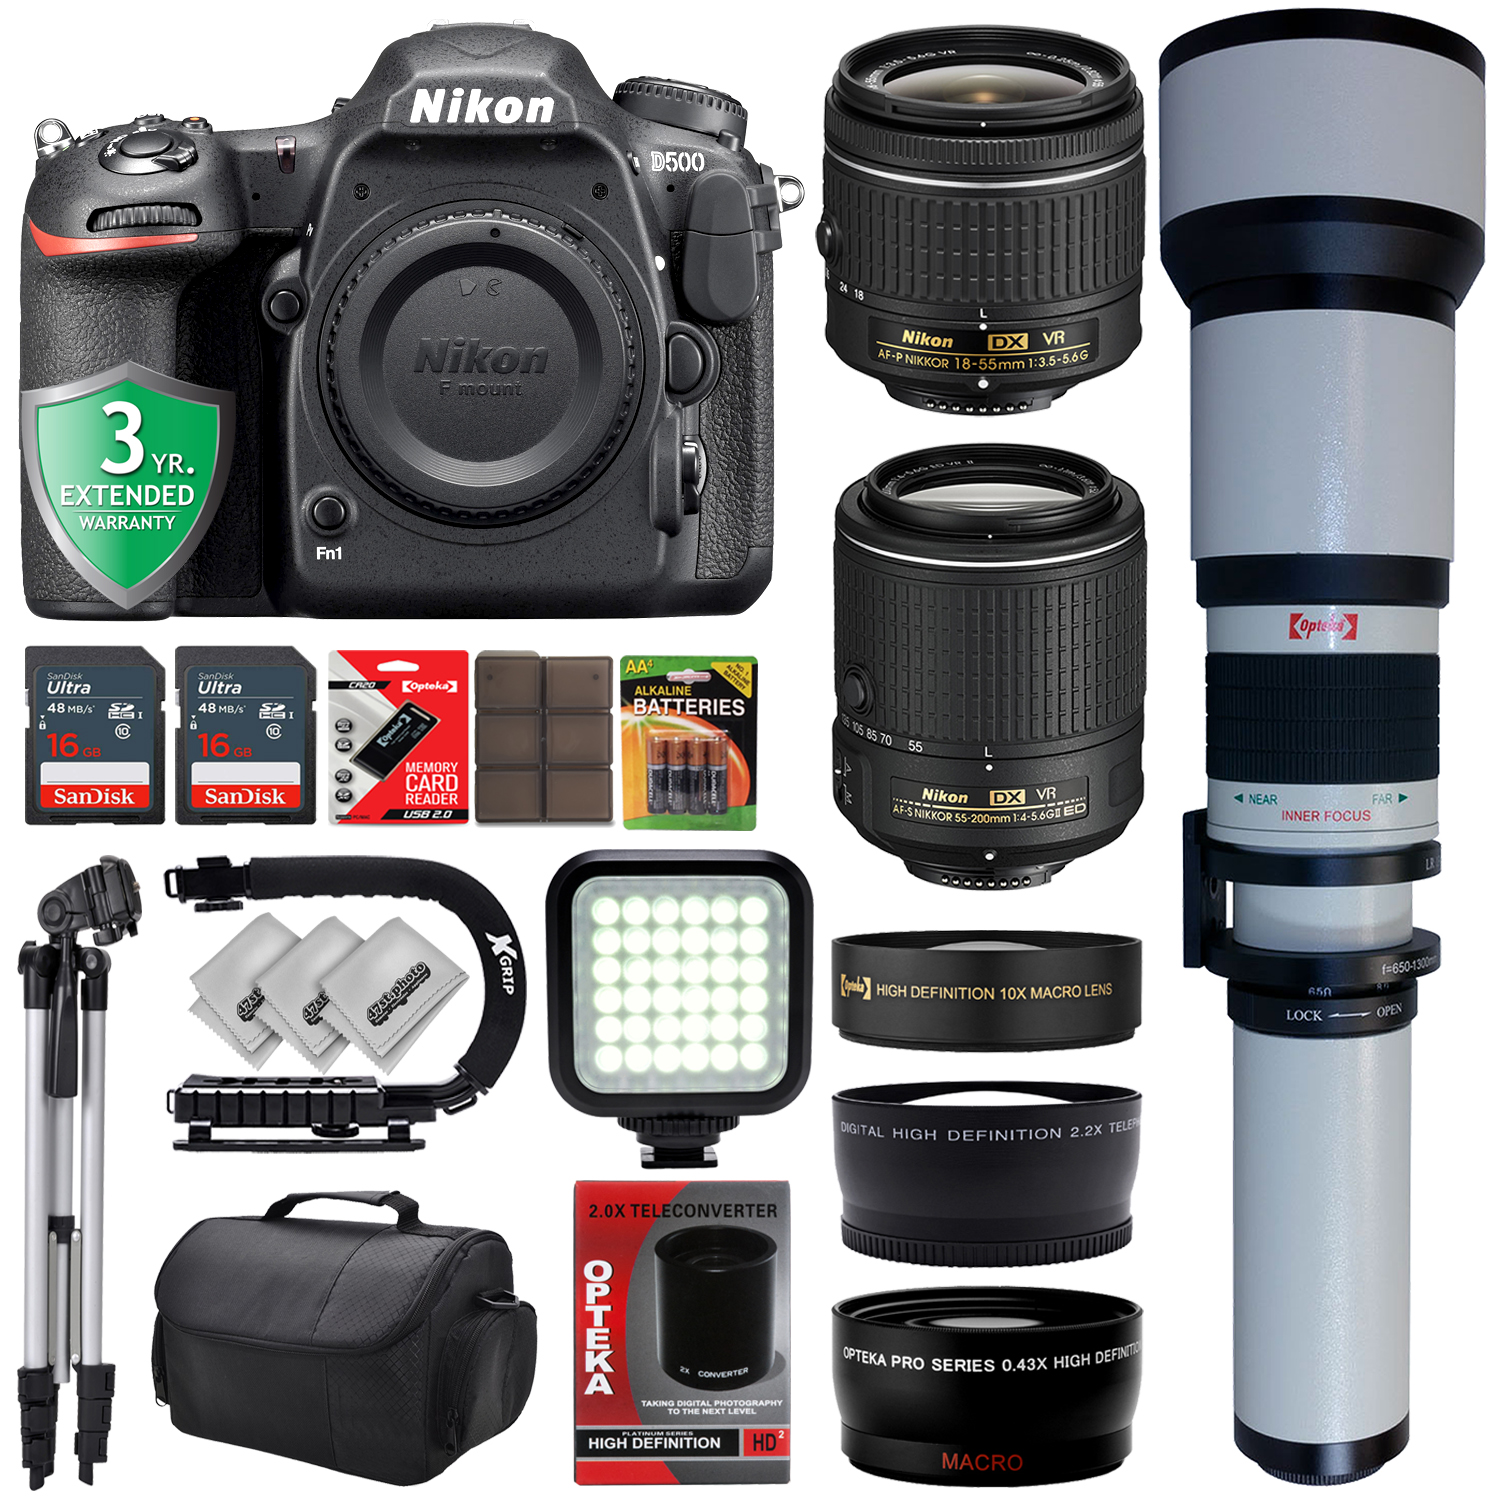 Nikon D500 4K Digital SLR Camera w/ 6 Lens - 18 to 2600mm - 32GB - 32PC Bundle - Nikon AF-P 18-55mm VR Lens - Nikon AF-S 55-200mm VR - Opteka 650-1300mm Zoom - 10x Macro - 0.43x Wide - 2.2x Tele